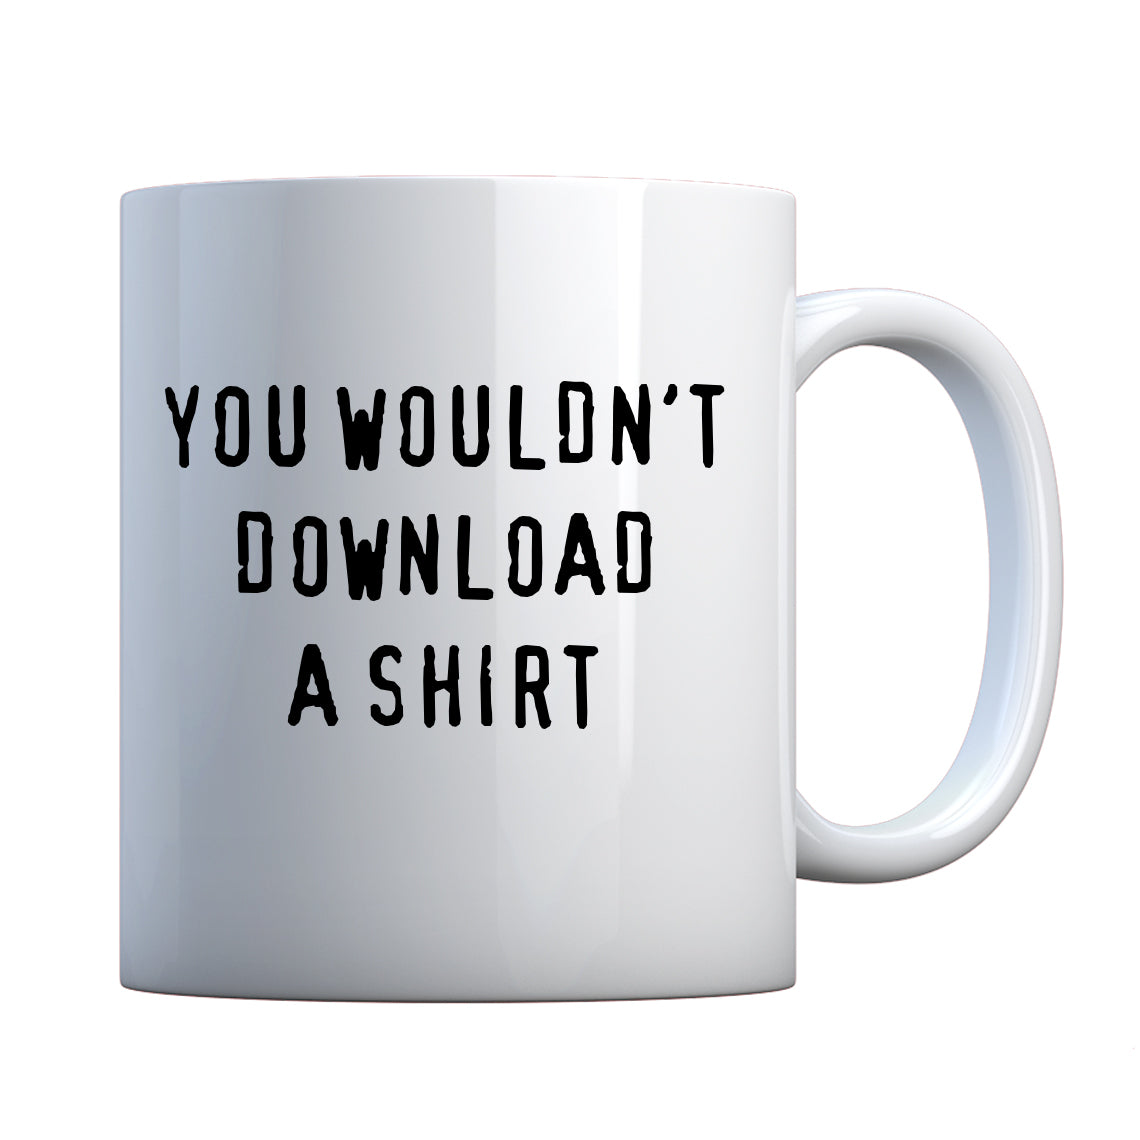 Mug You Wouldn't Download a Shirt Ceramic Gift Mug